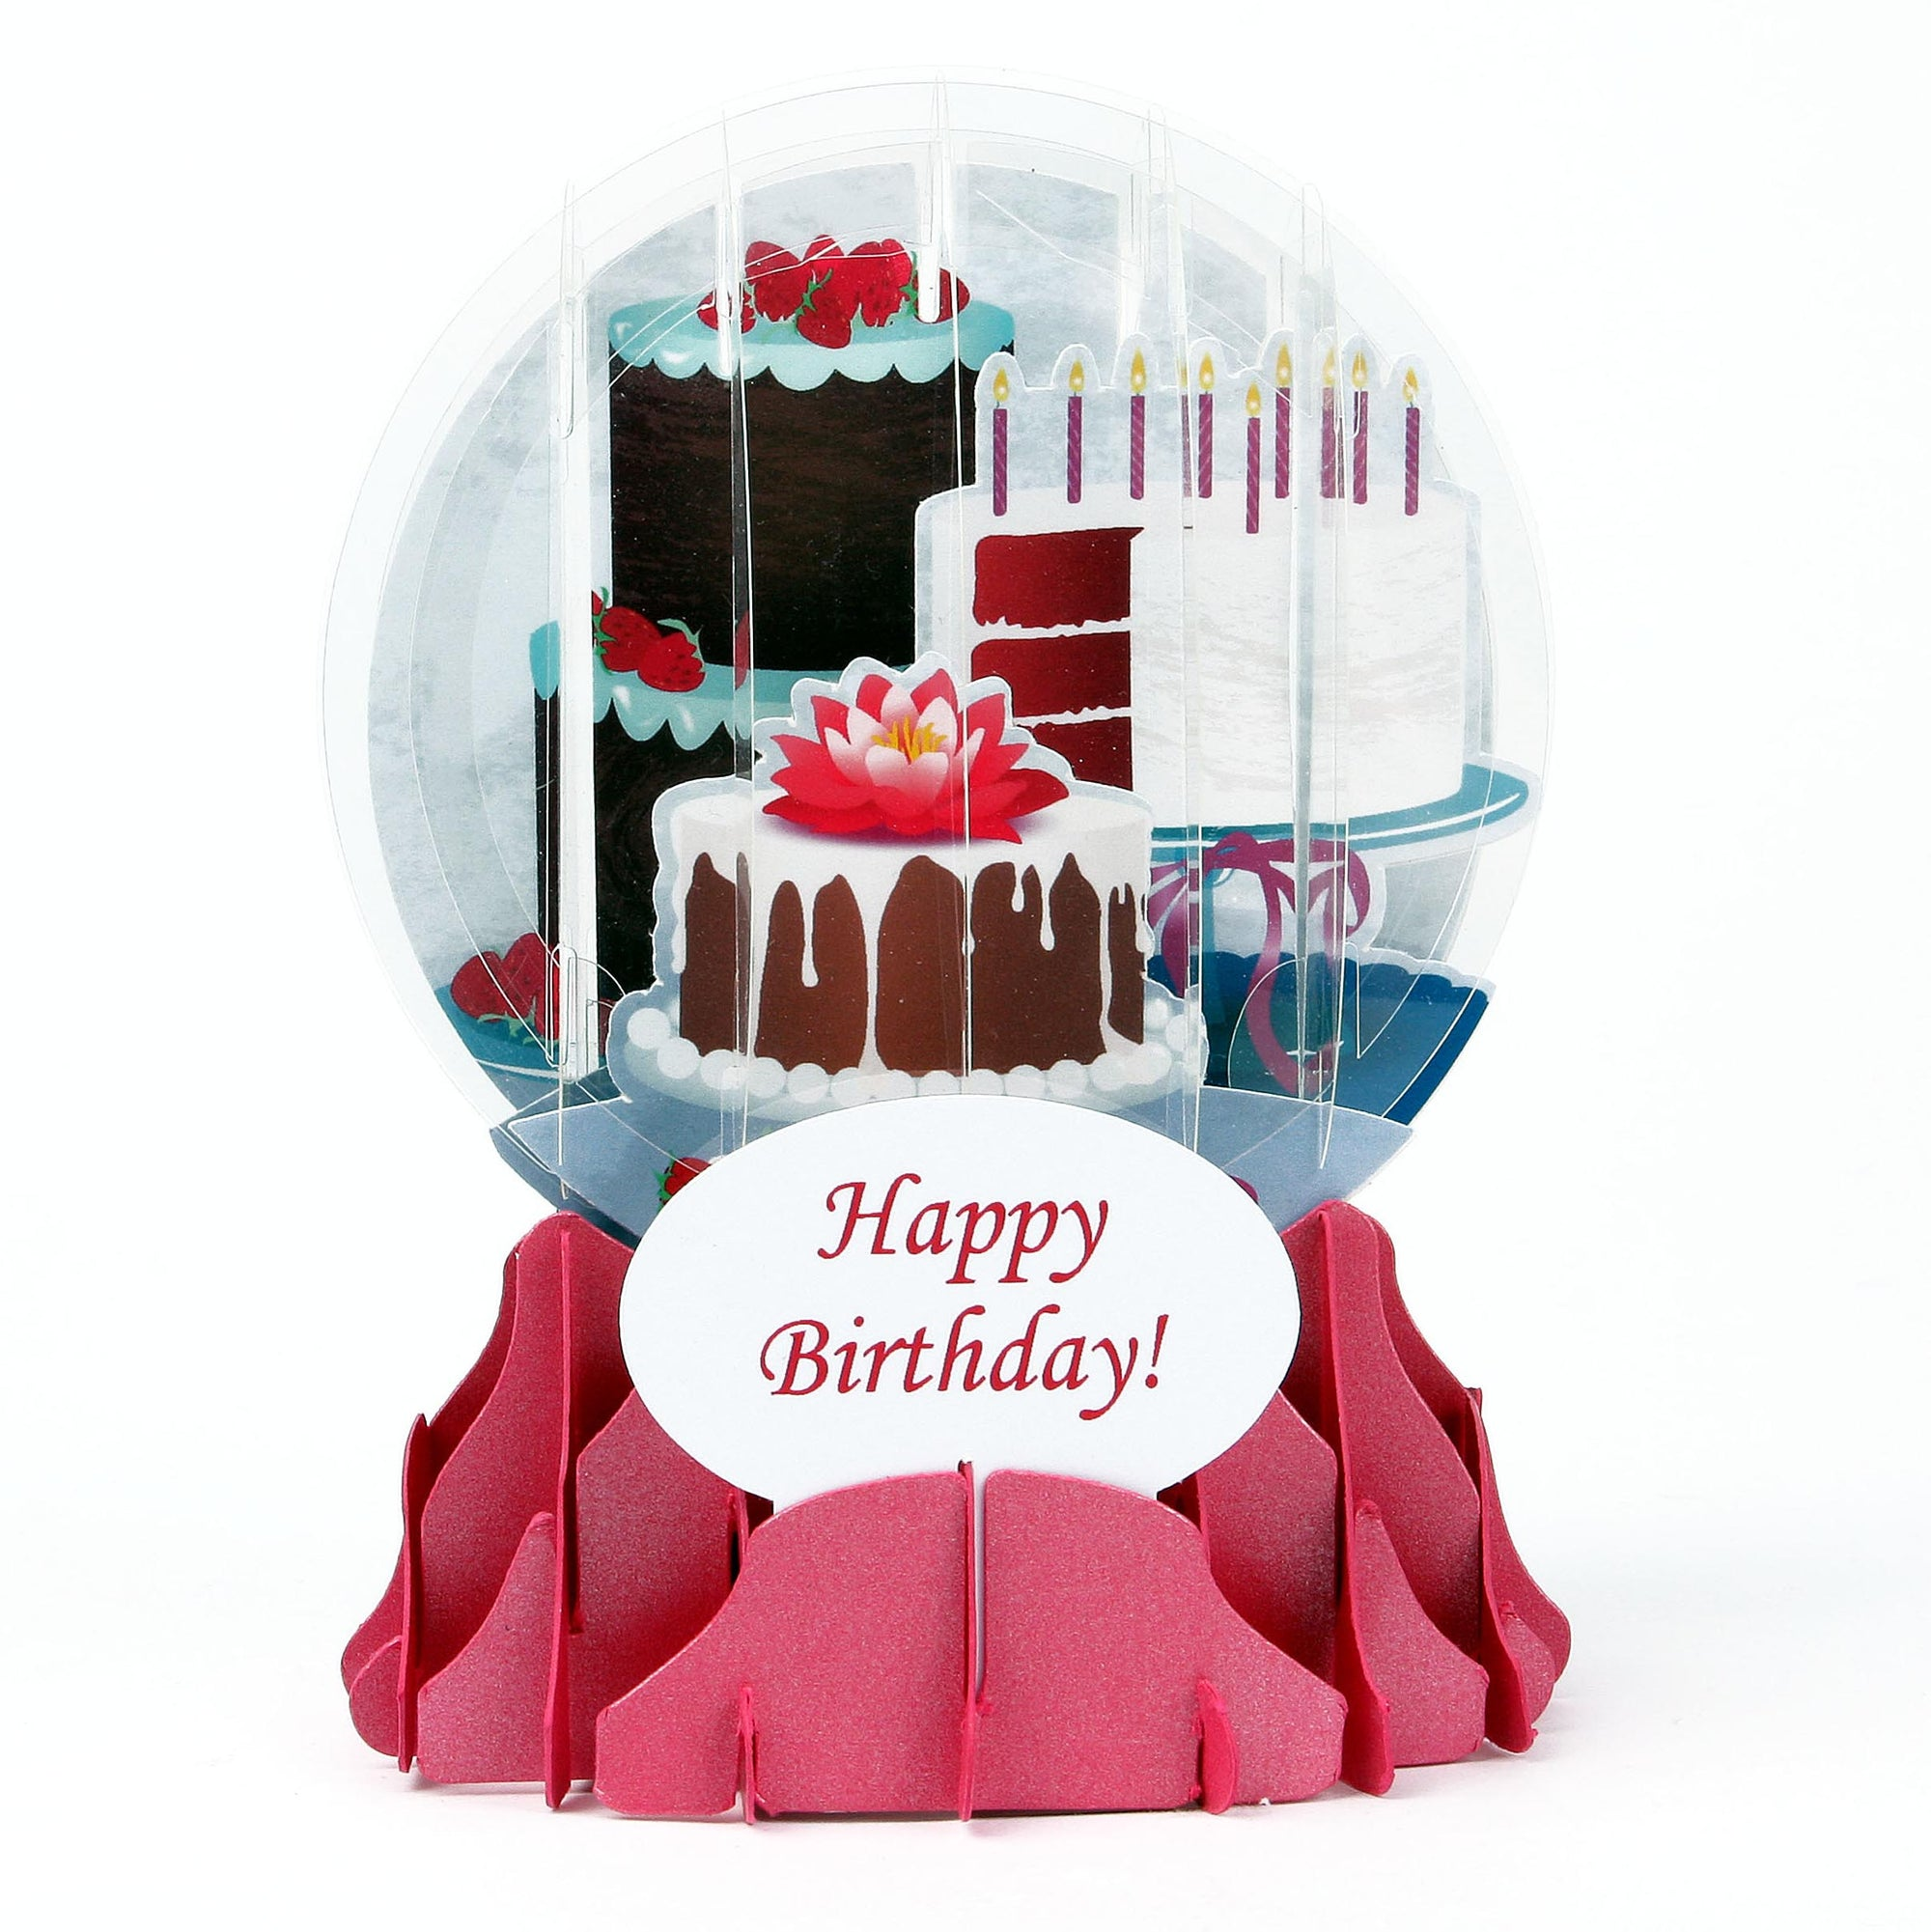 Birthday Cake Pop-Up Snow Globe Card - Heart of the Home PA